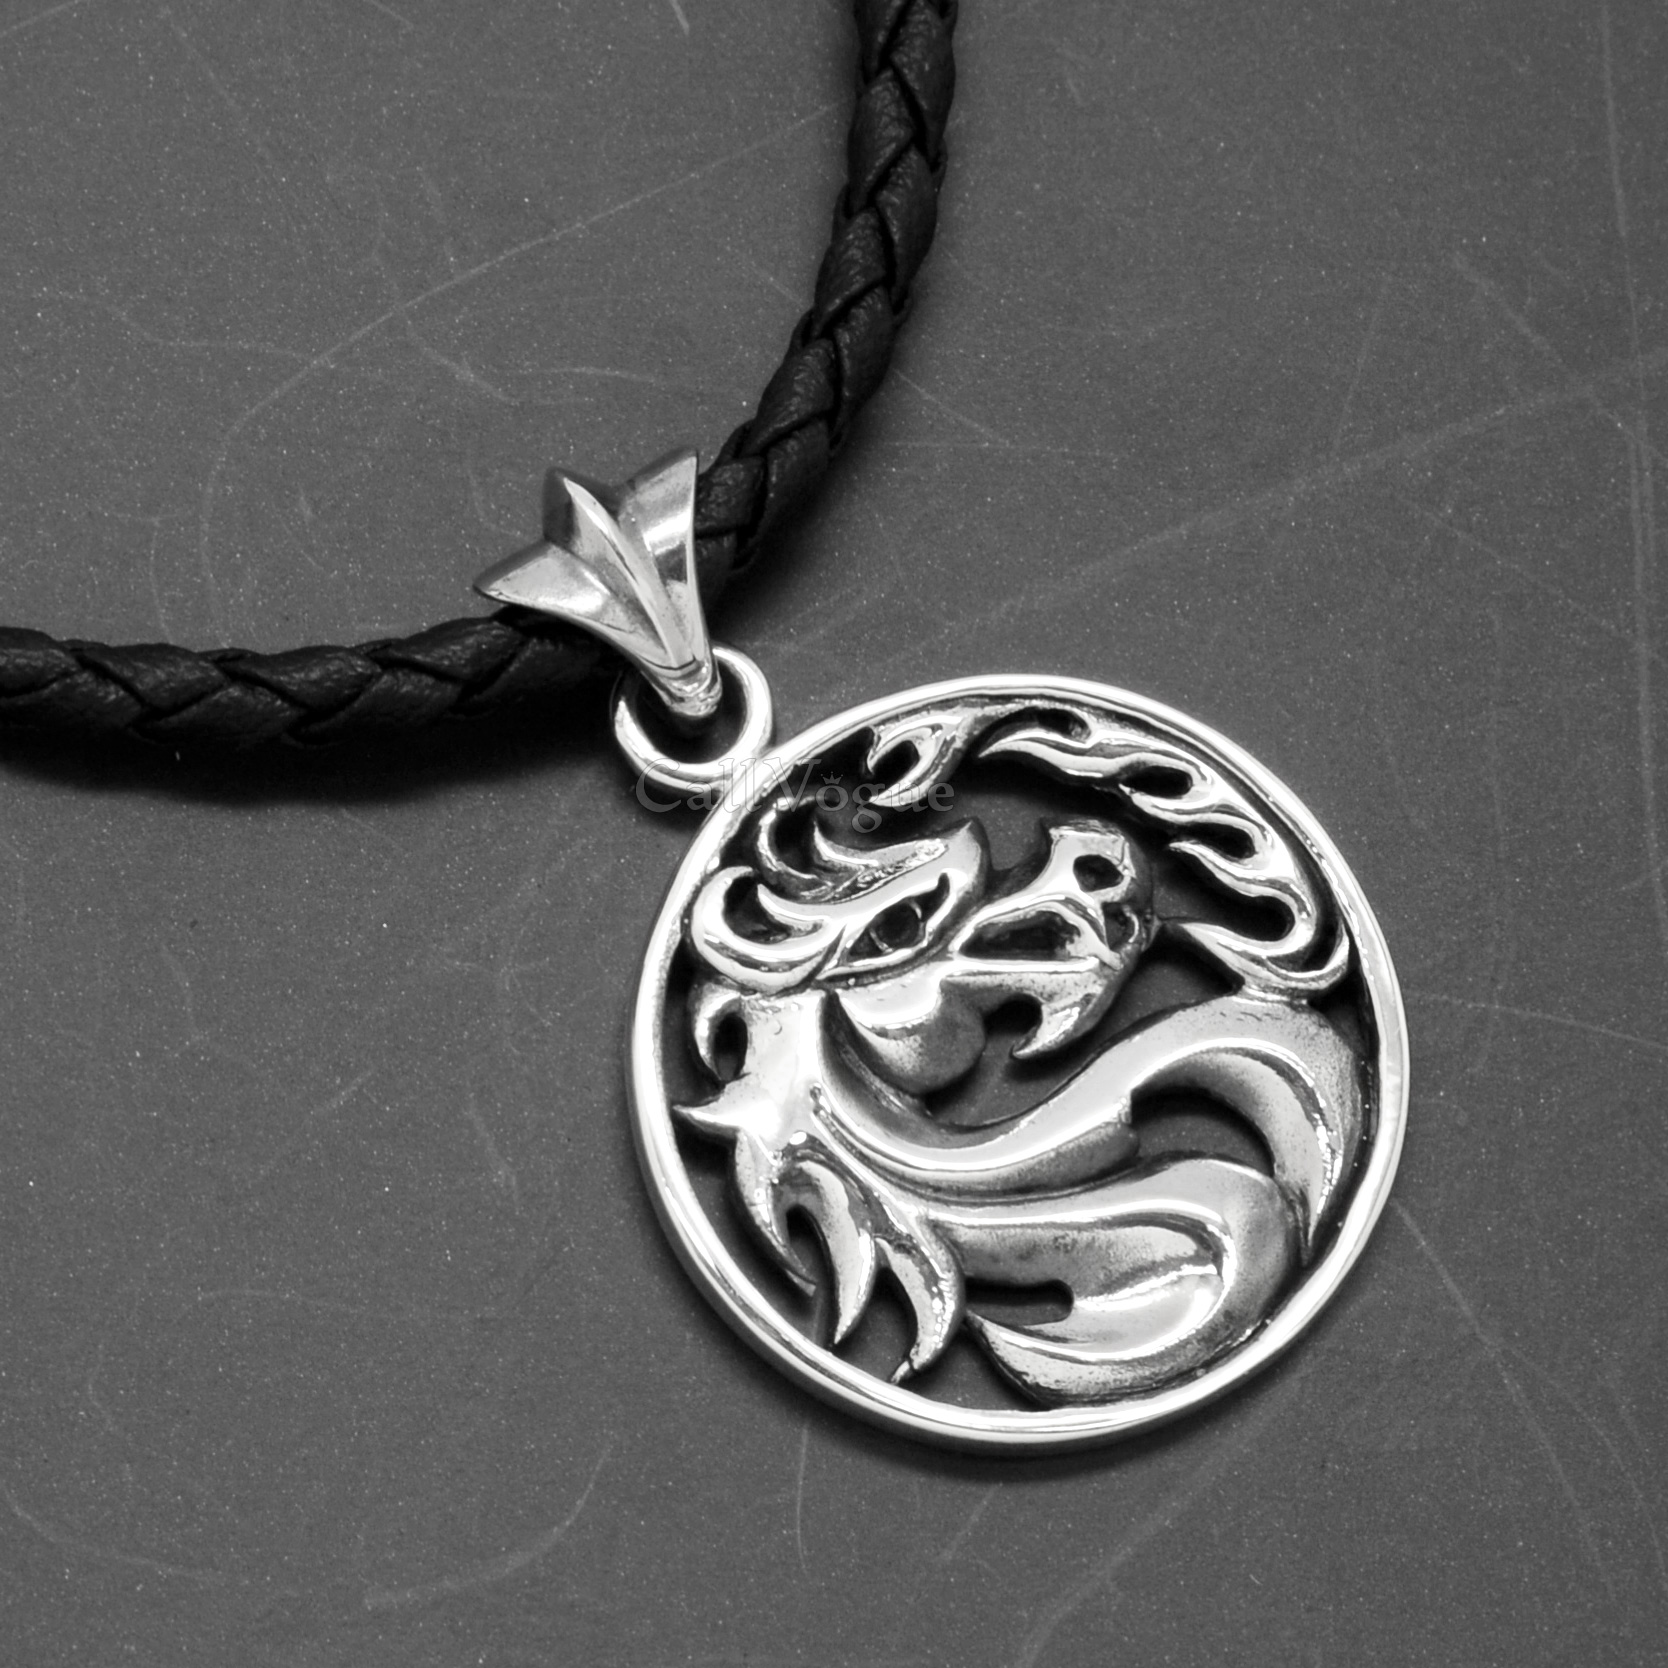 Wild horse pendant 925 sterling silver medal callvogue wild horse pendant 925 sterling silver medal mozeypictures Image collections